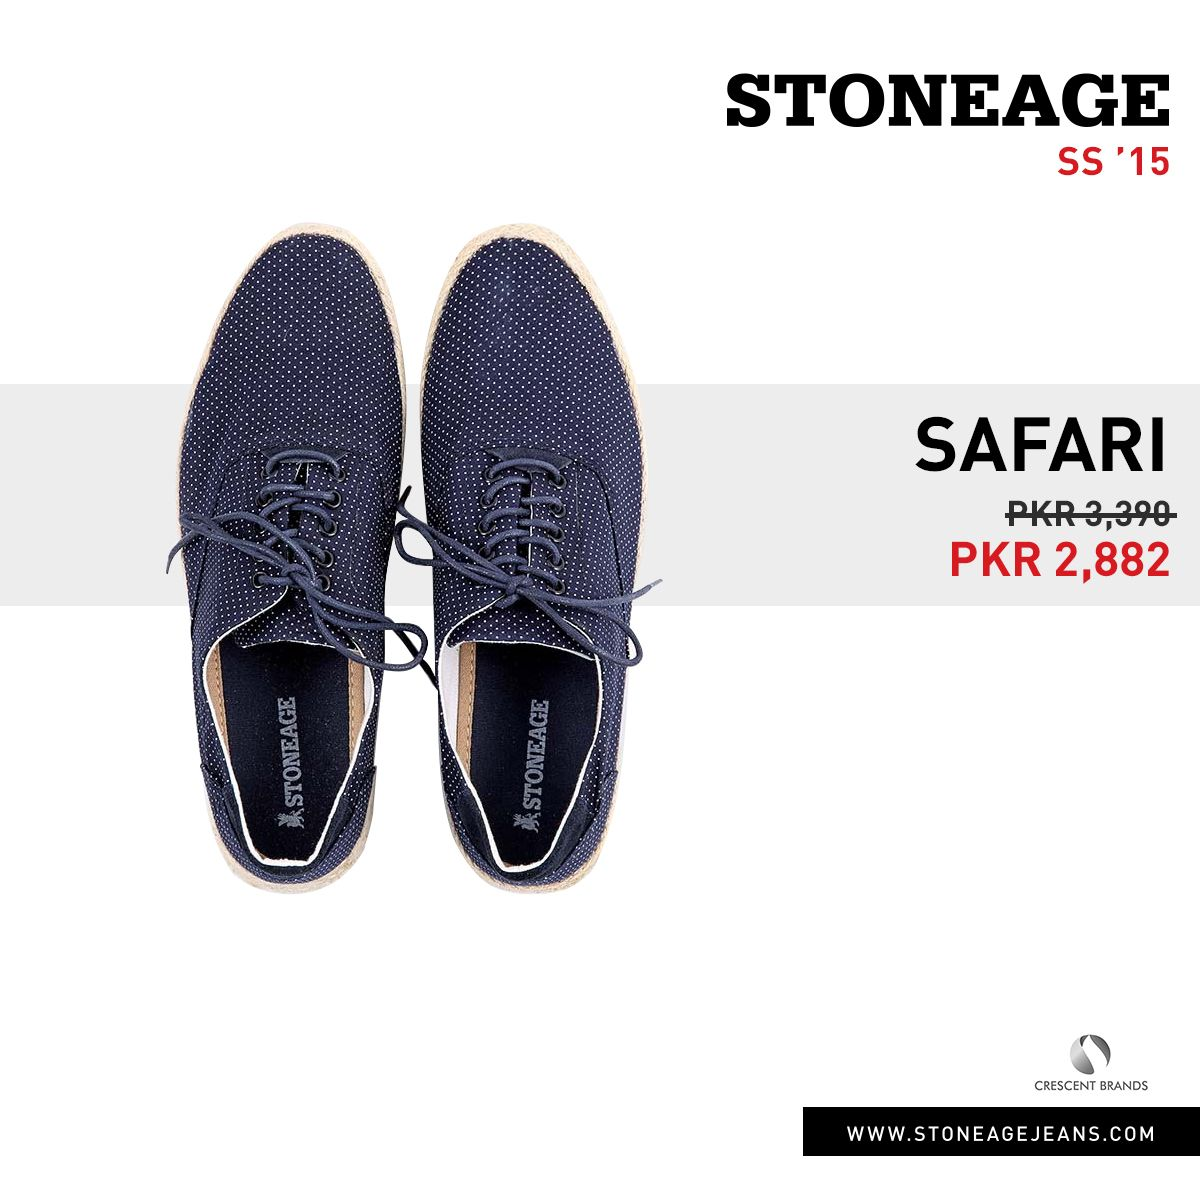 What's the fun in wearing stylish clothes without stylish footwear? Get these shoes for the perfect look to make a statement. Shop now at http://bit.ly/1G6ODrL. #Stoneage #Footwear